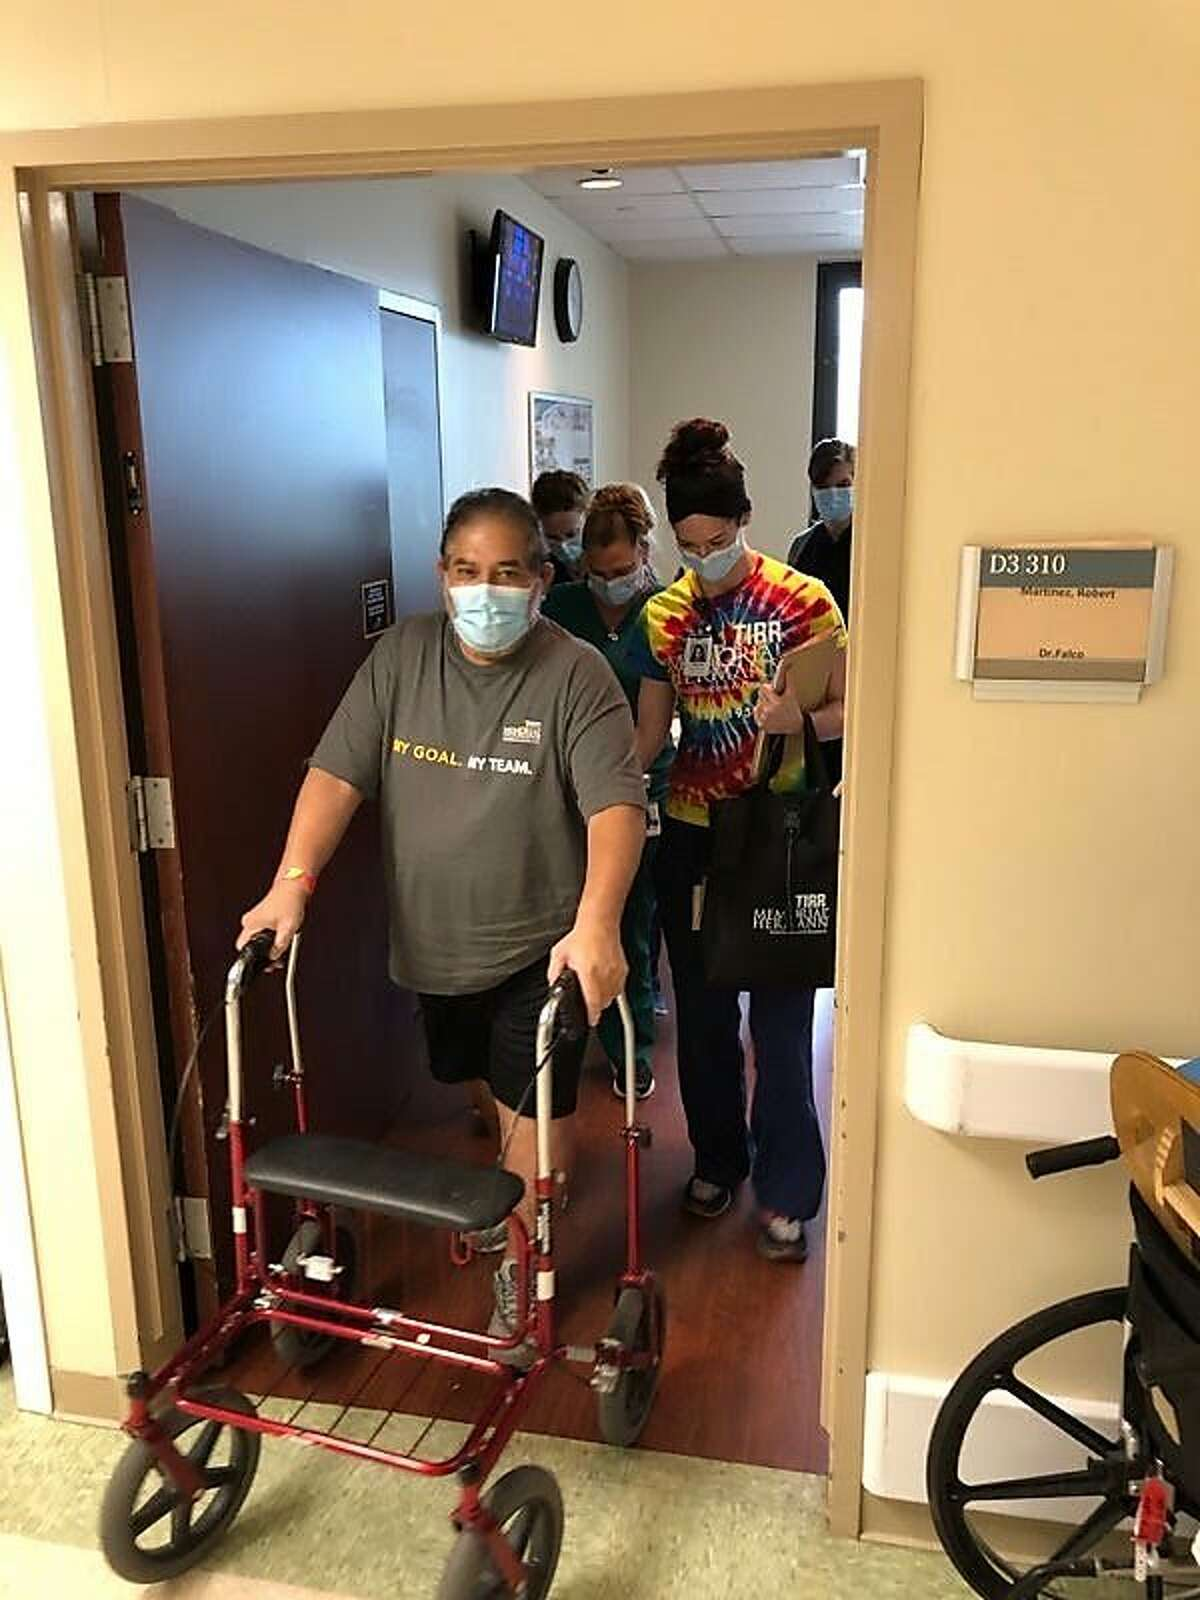 Robert Martinez, 62, was discharged from TIRR Memorial Hermann's COVID-19 rehabilitation program on May 14, 2020.